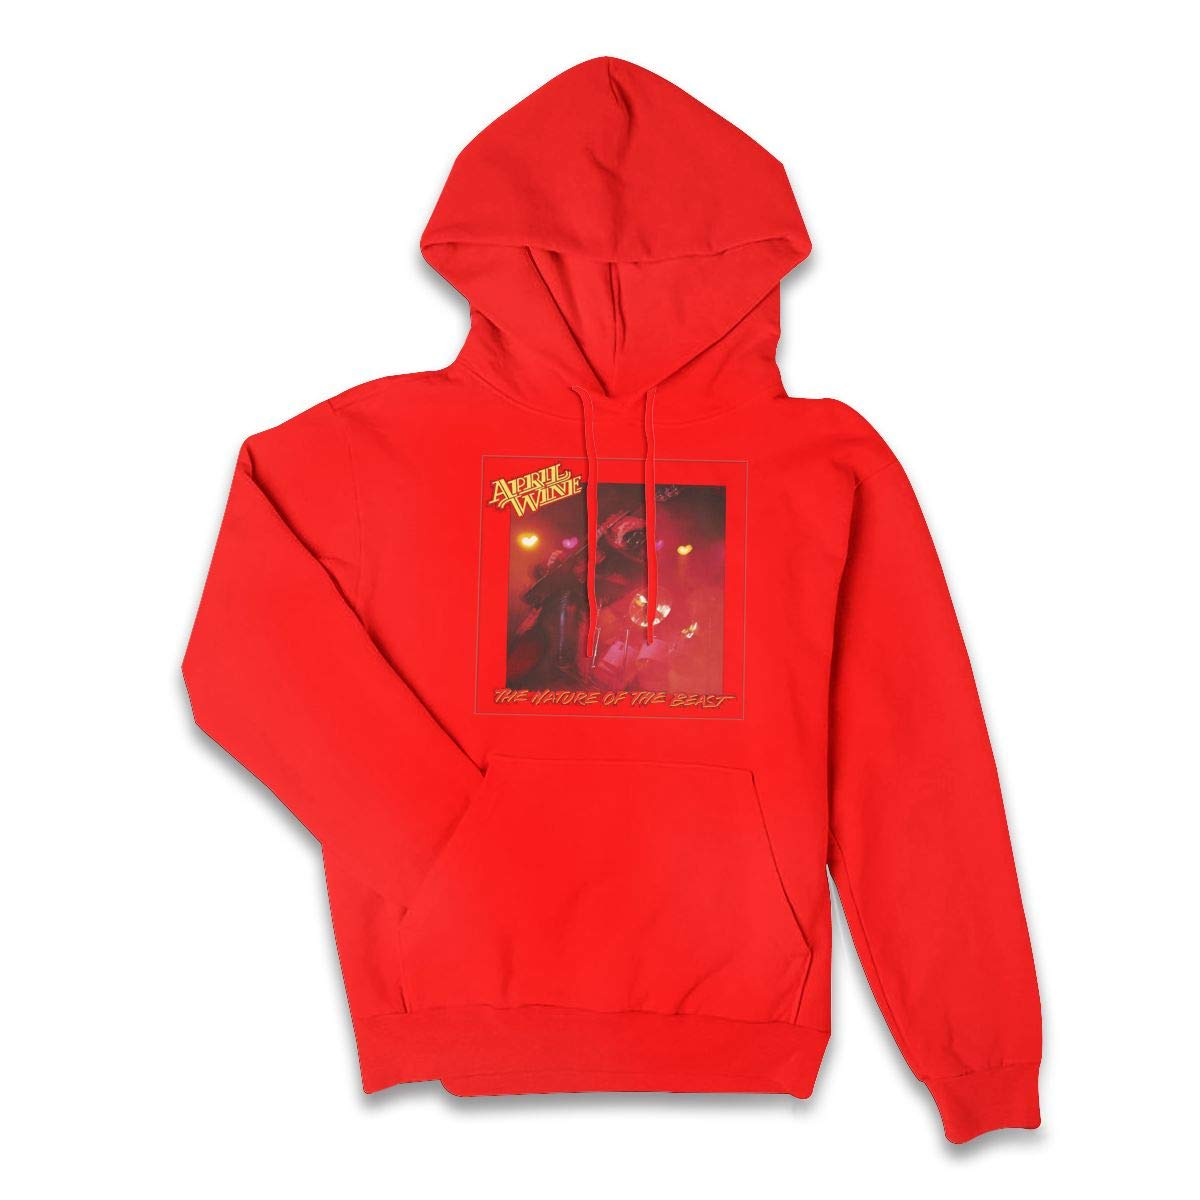 Erman Color Name Casual April Wine Music Band Cover Pullover Hooded Shirts With Pocket L